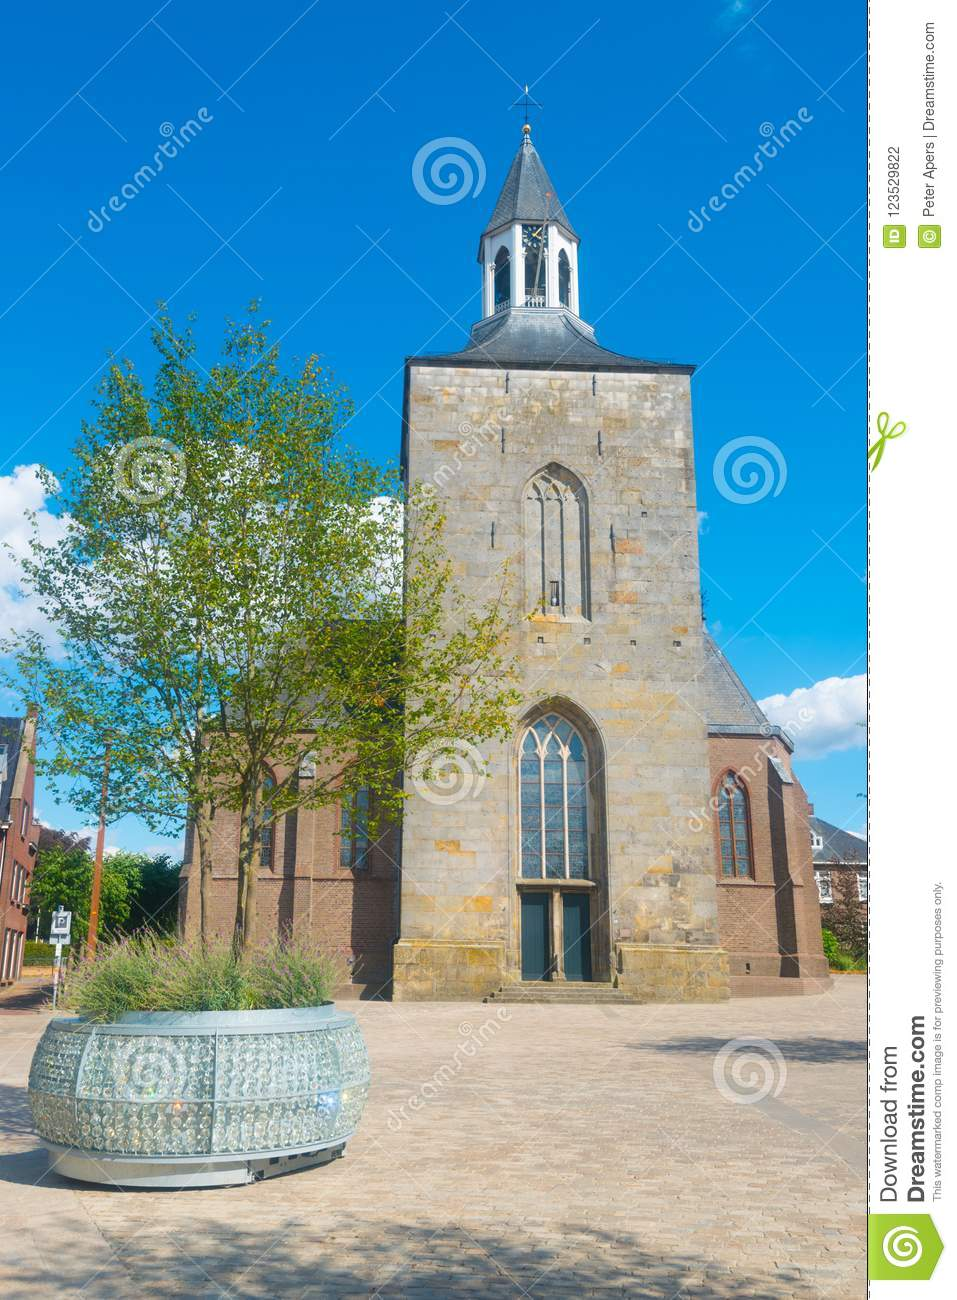 Download Saint Pancratius Basilica In Tubbergen, The Netherlands Stock Photo - Image of pancratius, white: 123529822